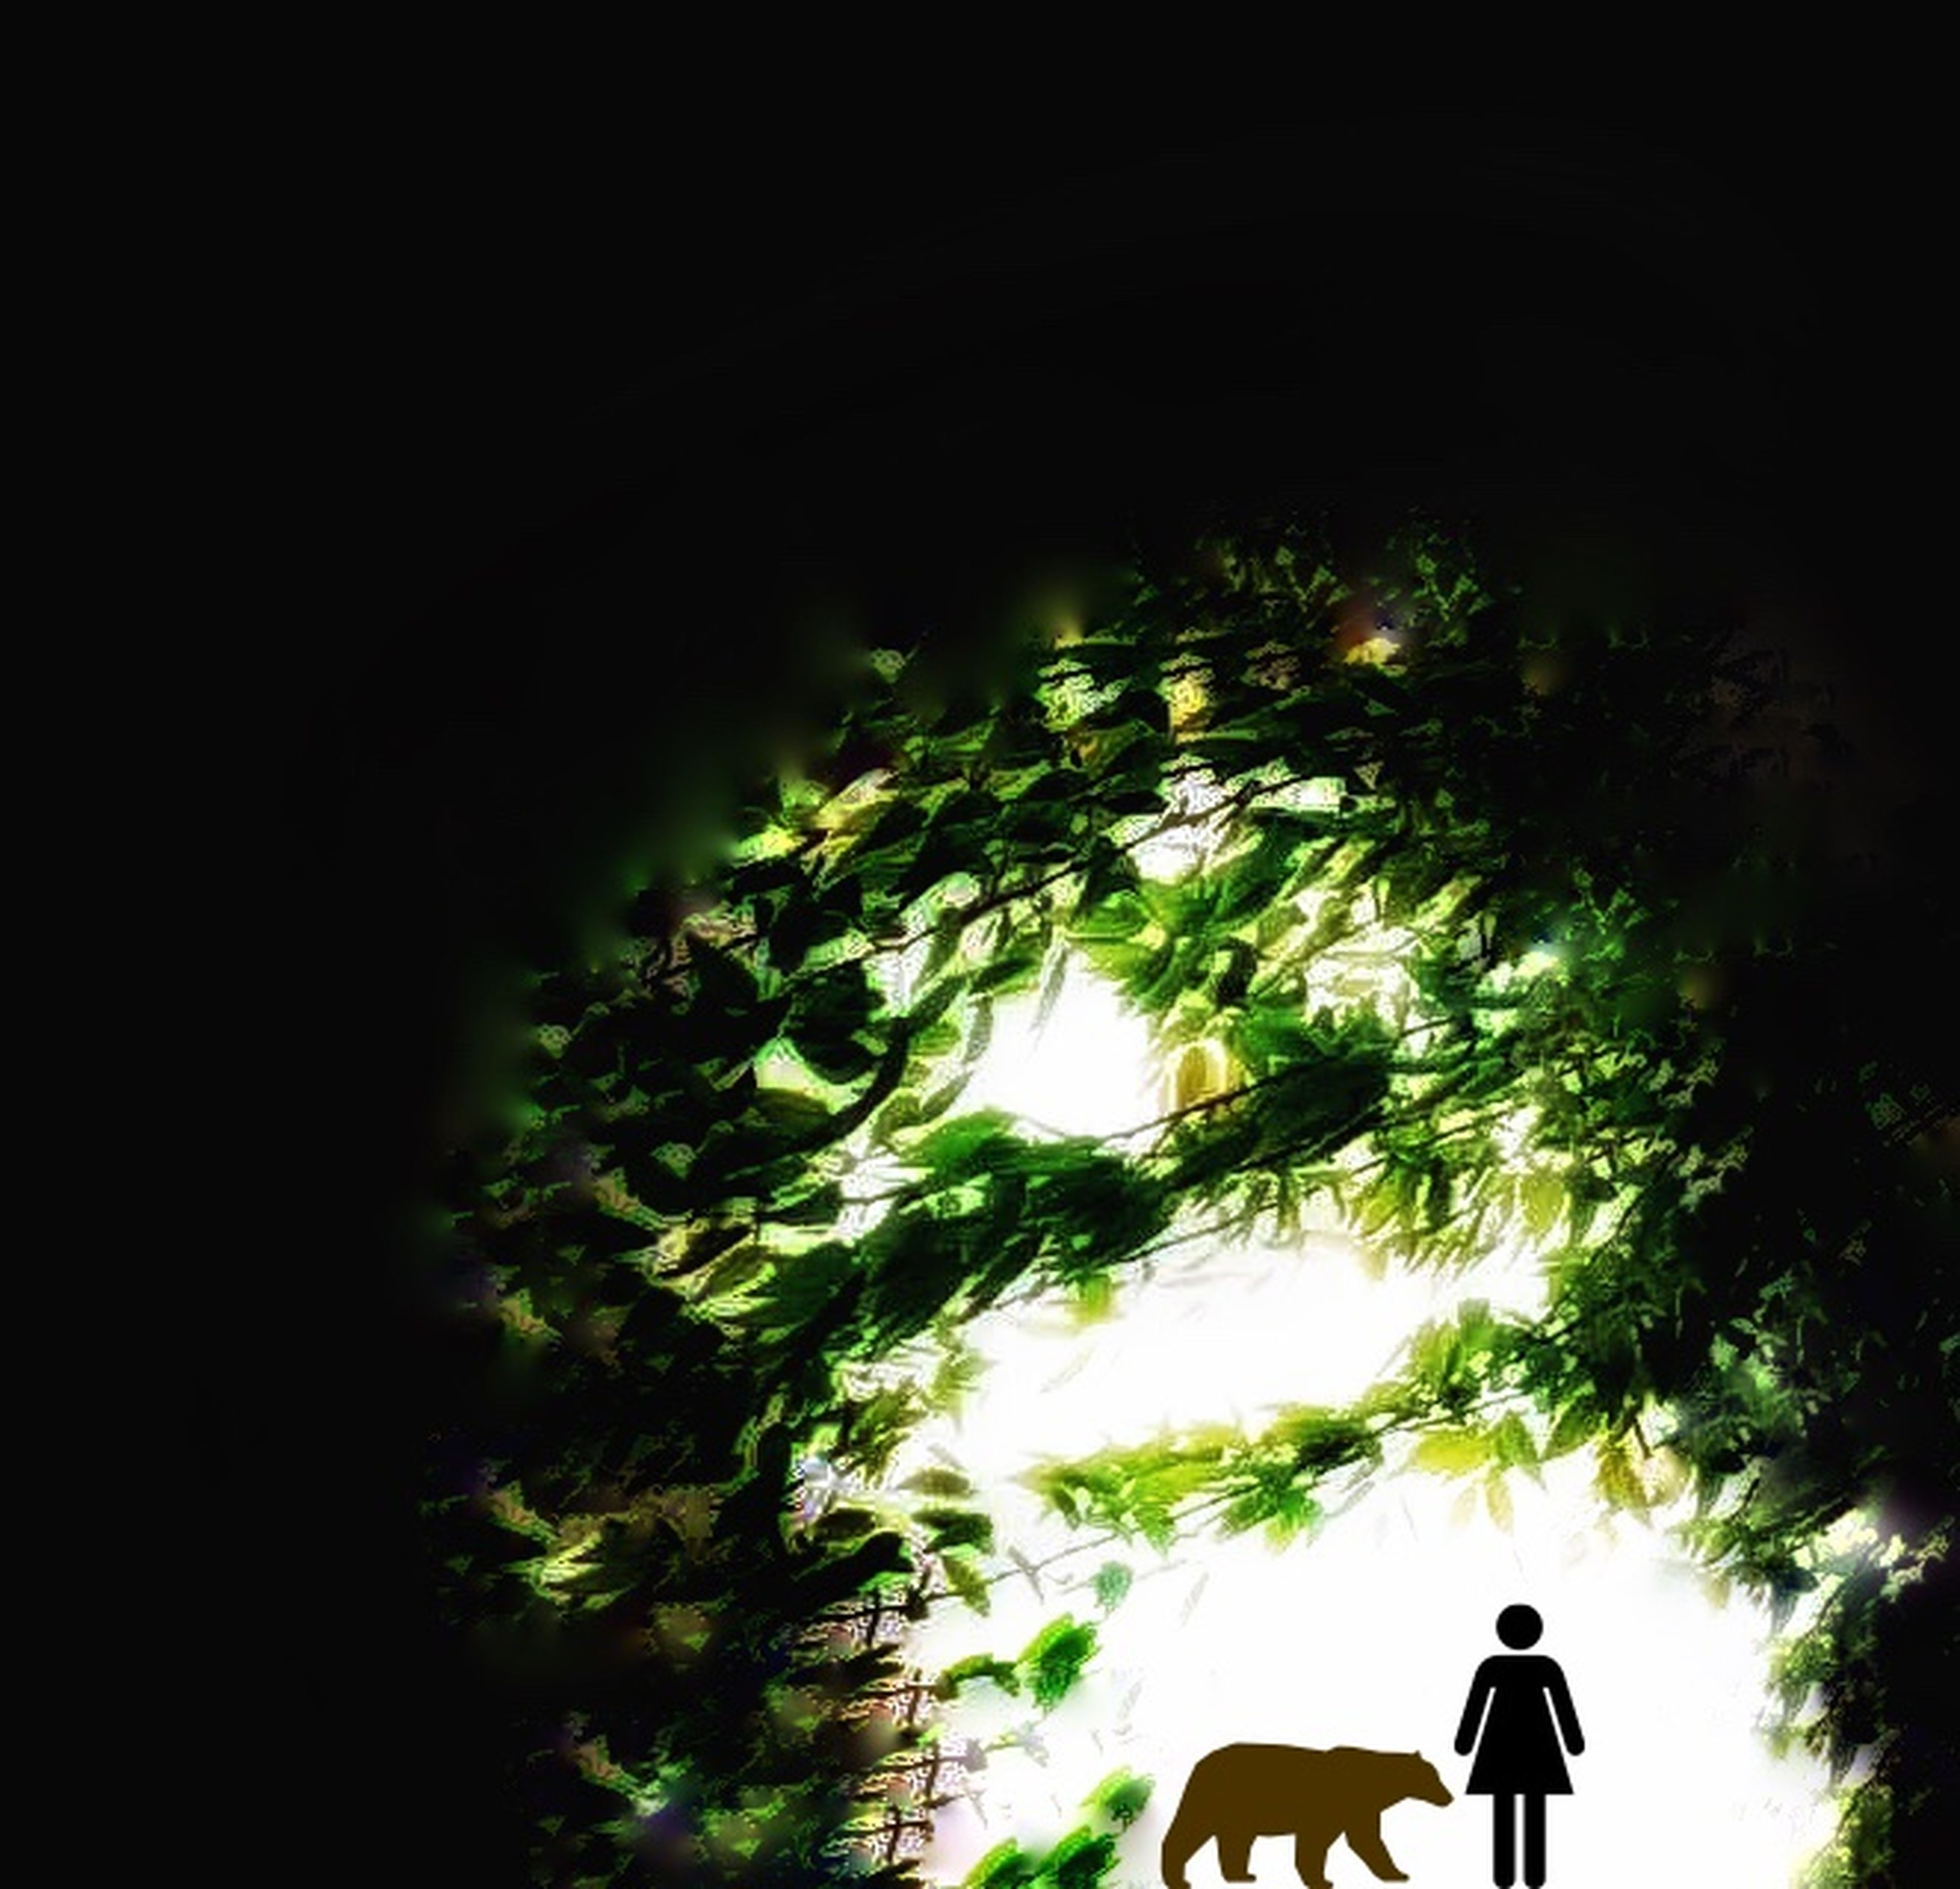 silhouette, tree, lifestyles, leisure activity, unrecognizable person, tranquility, nature, outline, growth, beauty in nature, tranquil scene, outdoors, scenics, sky, day, dark, idyllic